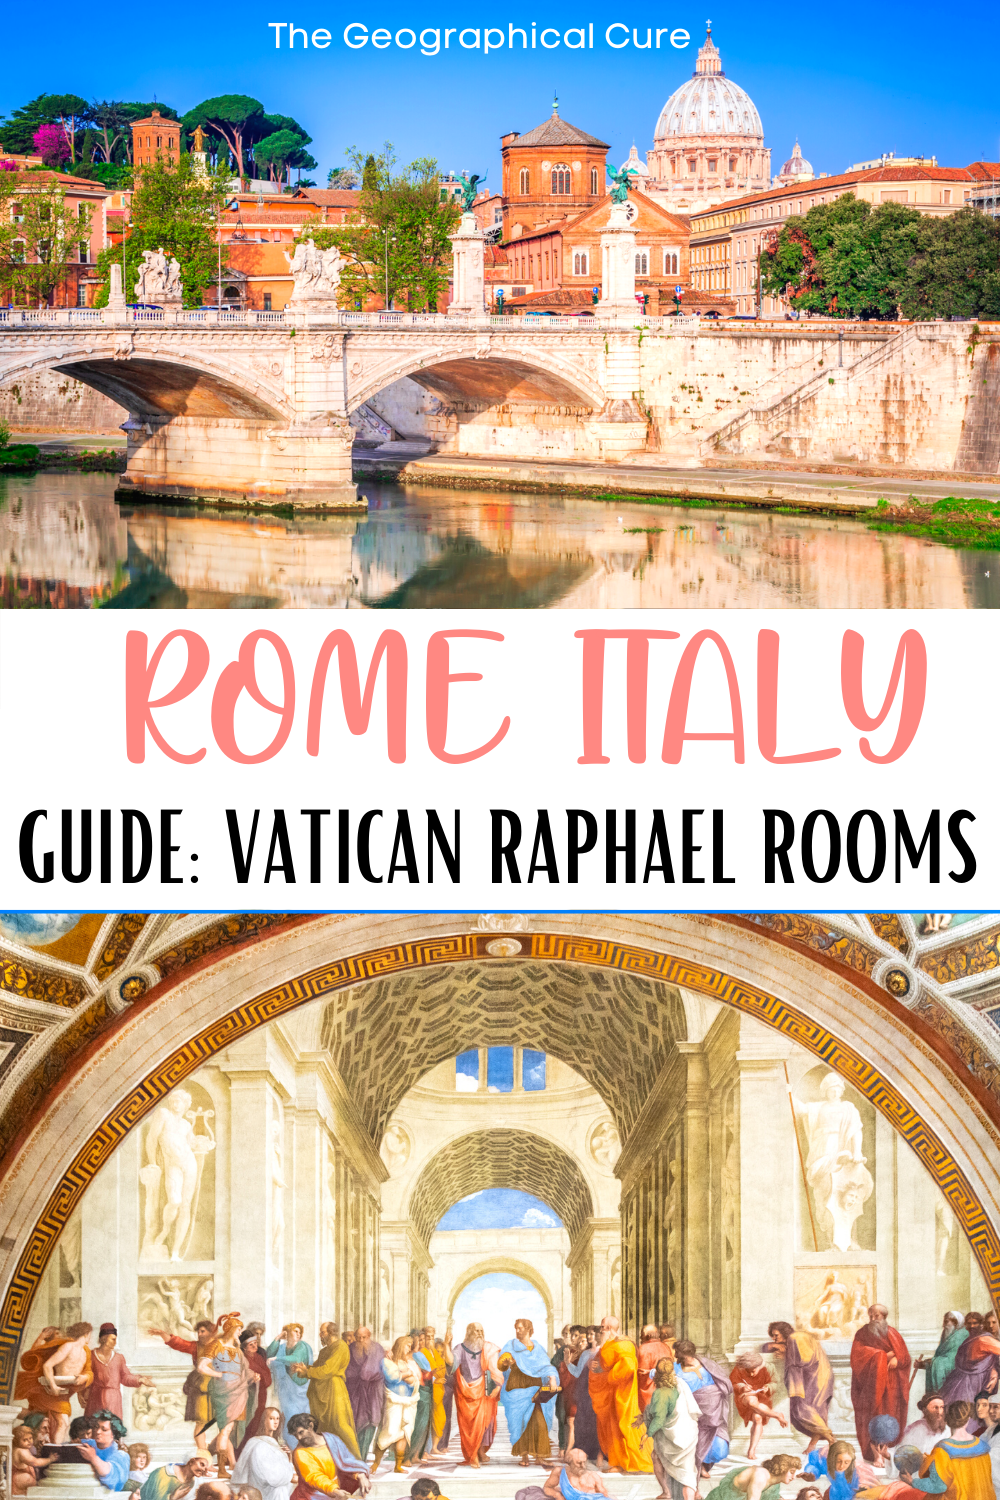 guide to the masterpieces of the Raphael Rooms in the Vatican Museums